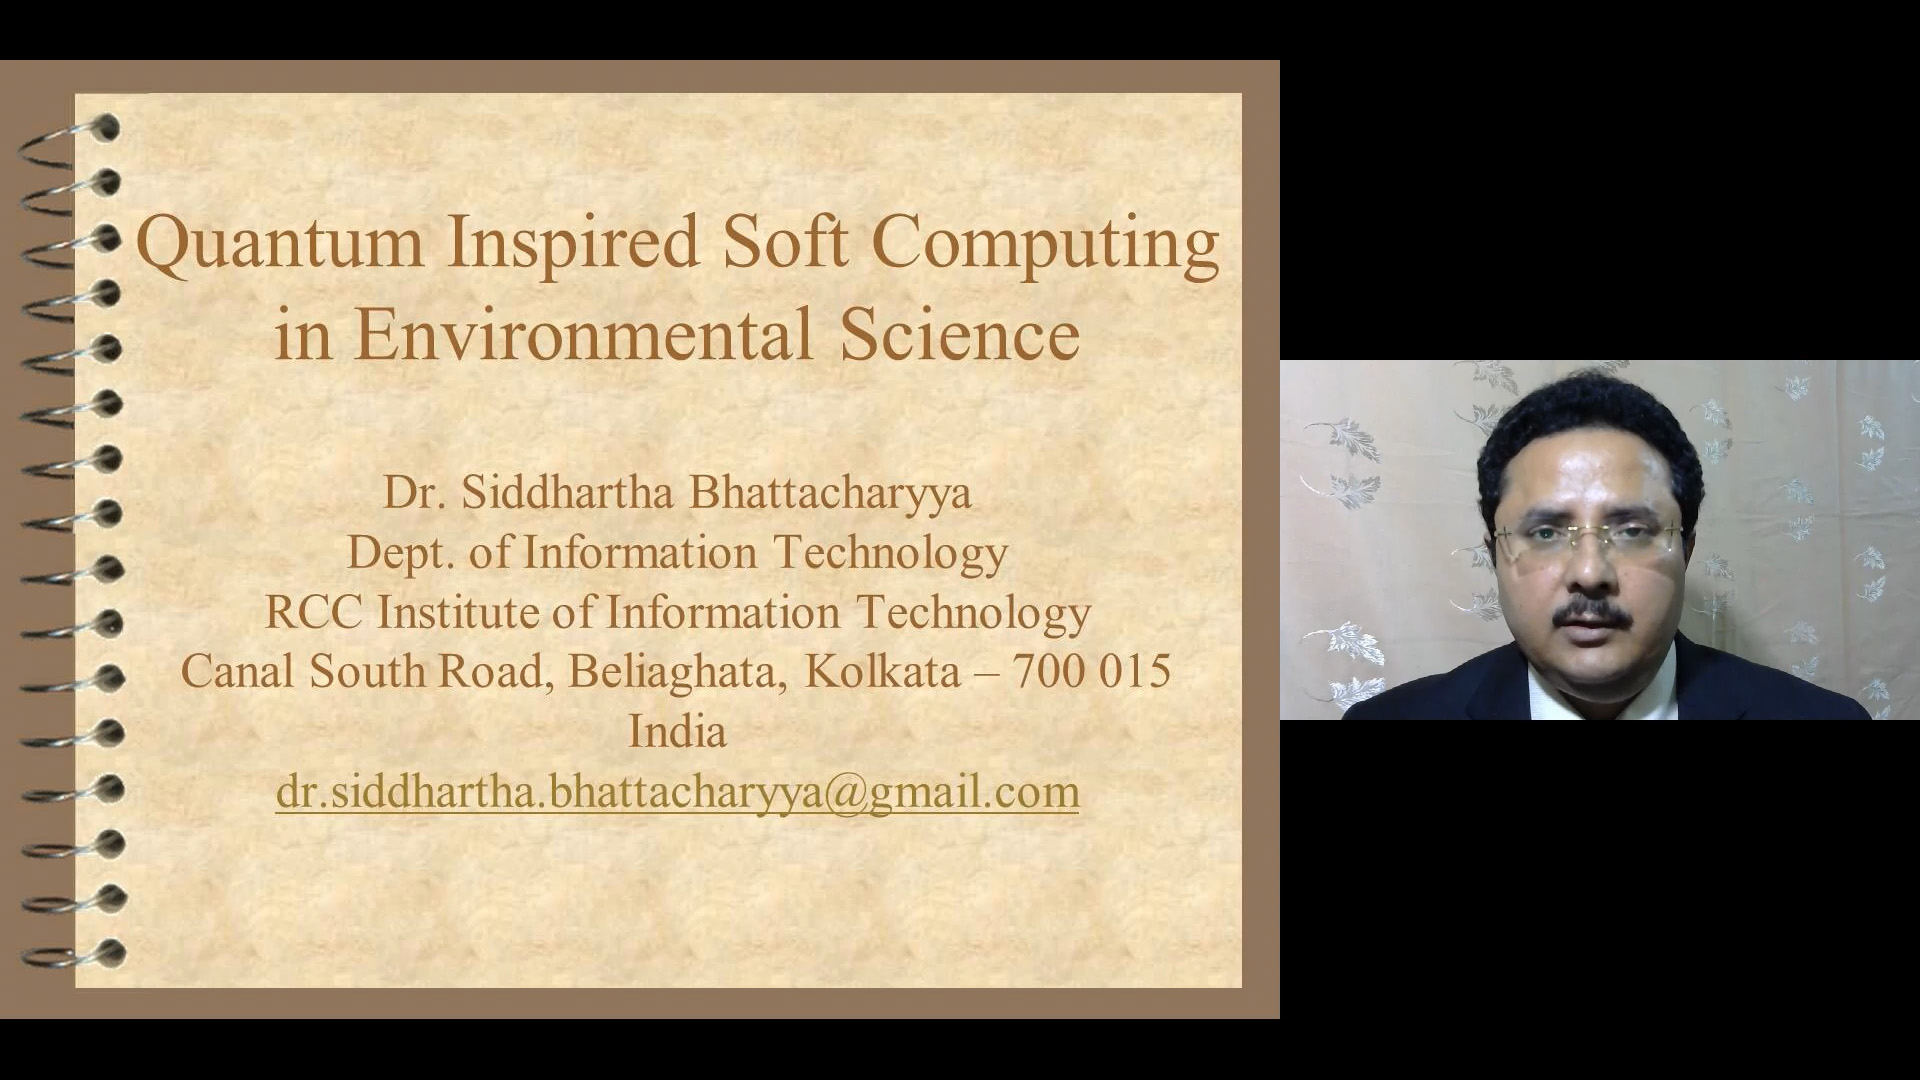 Quantum-Inspired Soft Computing in Environmental Science